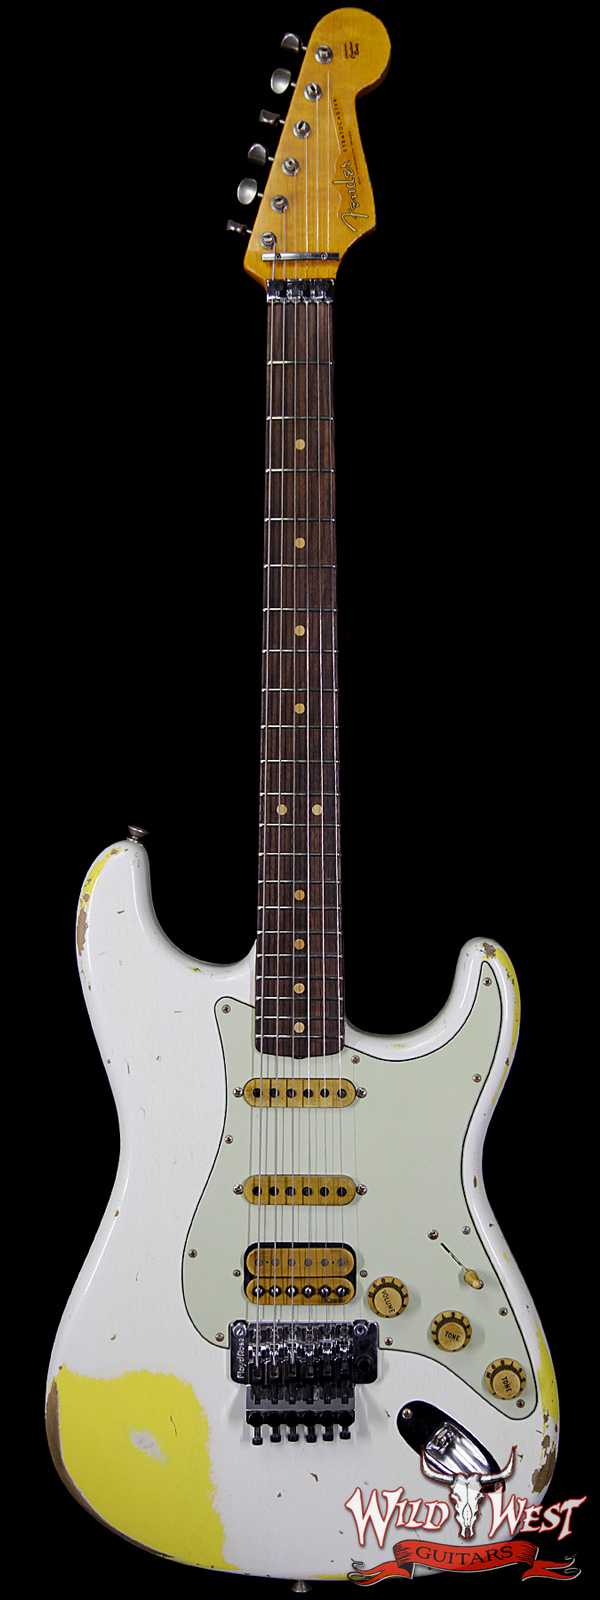 Fender Custom Shop White Lightning Stratocaster Heavy Relic Rosewood Olympic White / Graffiti Yellow